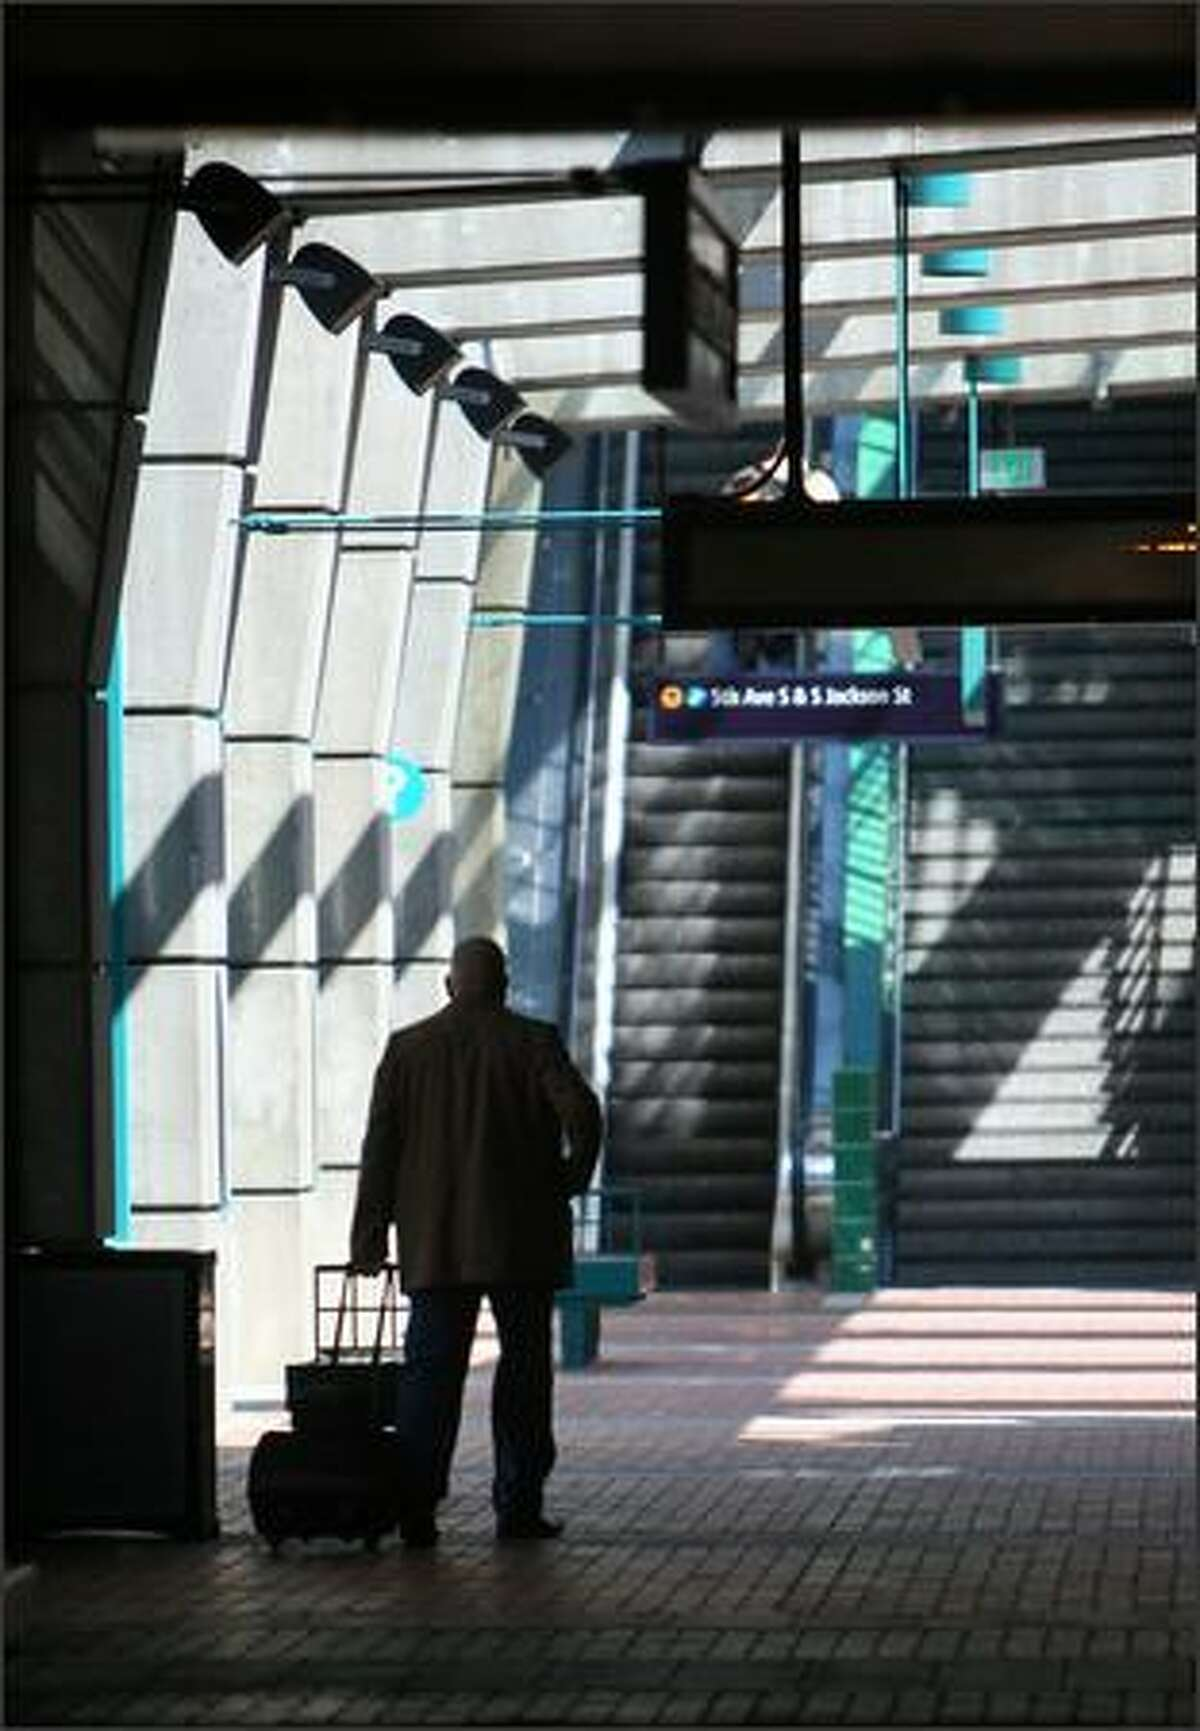 A bus passenger walks through a terminal at the Downtown Seattle Transit Tunnel. Sound Transit's Link light-rail trains have started two months of test runs through the tunnel, moving alongside buses.